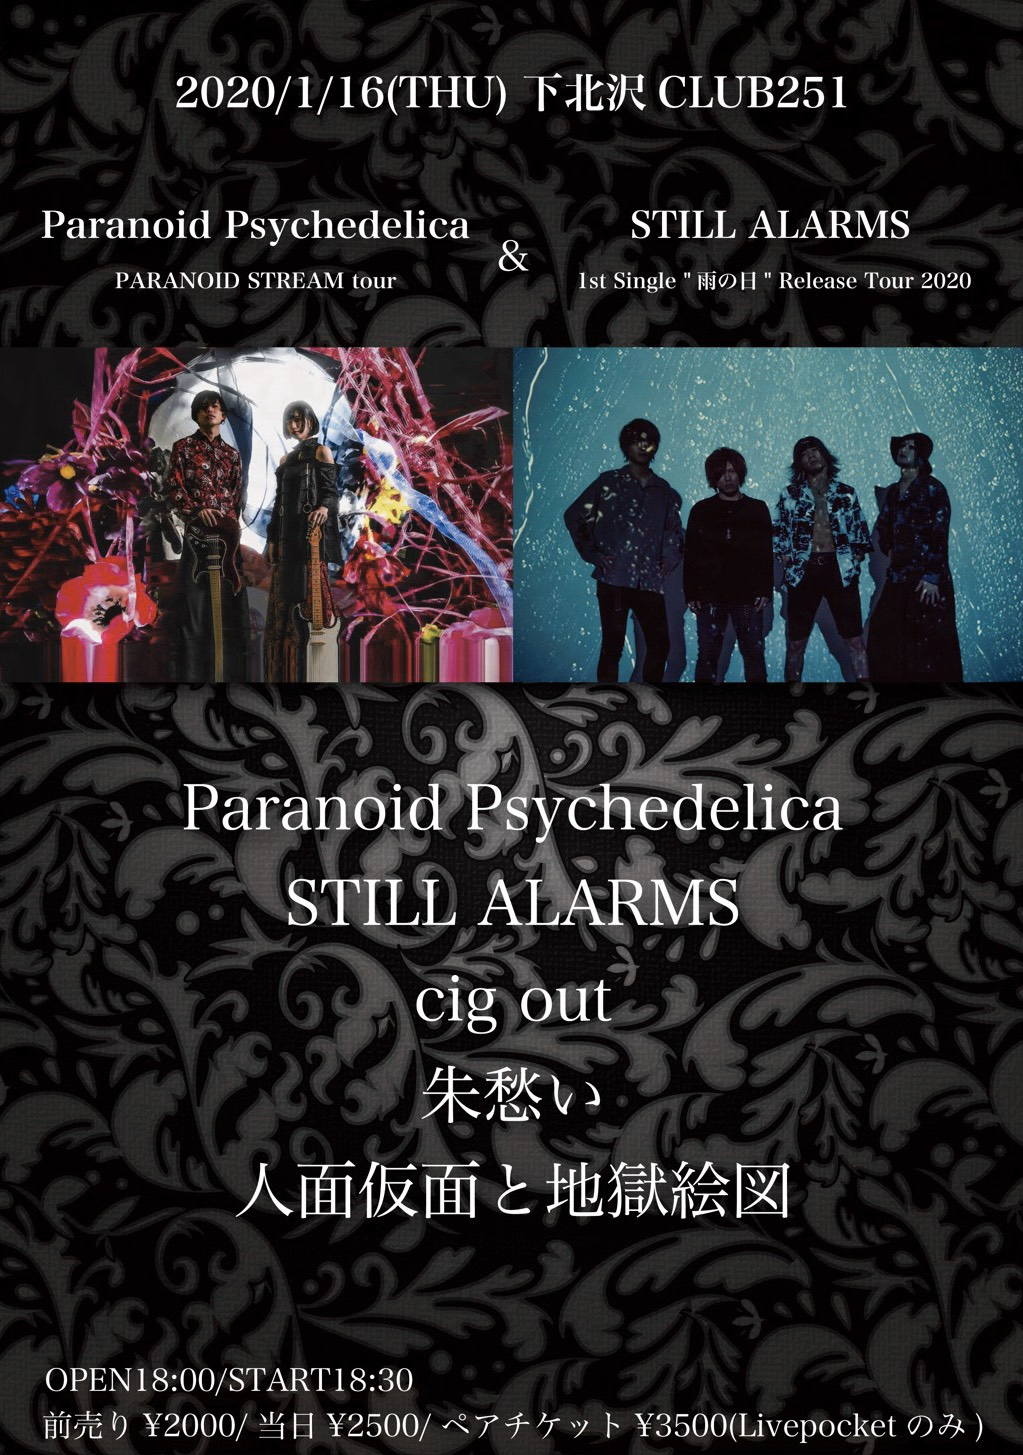 "Paranoid Psychedelica~「PARANOID STREAM tour」~&STILL ALARMS ~1st Single ""雨の日"" Release Tour 2020~"